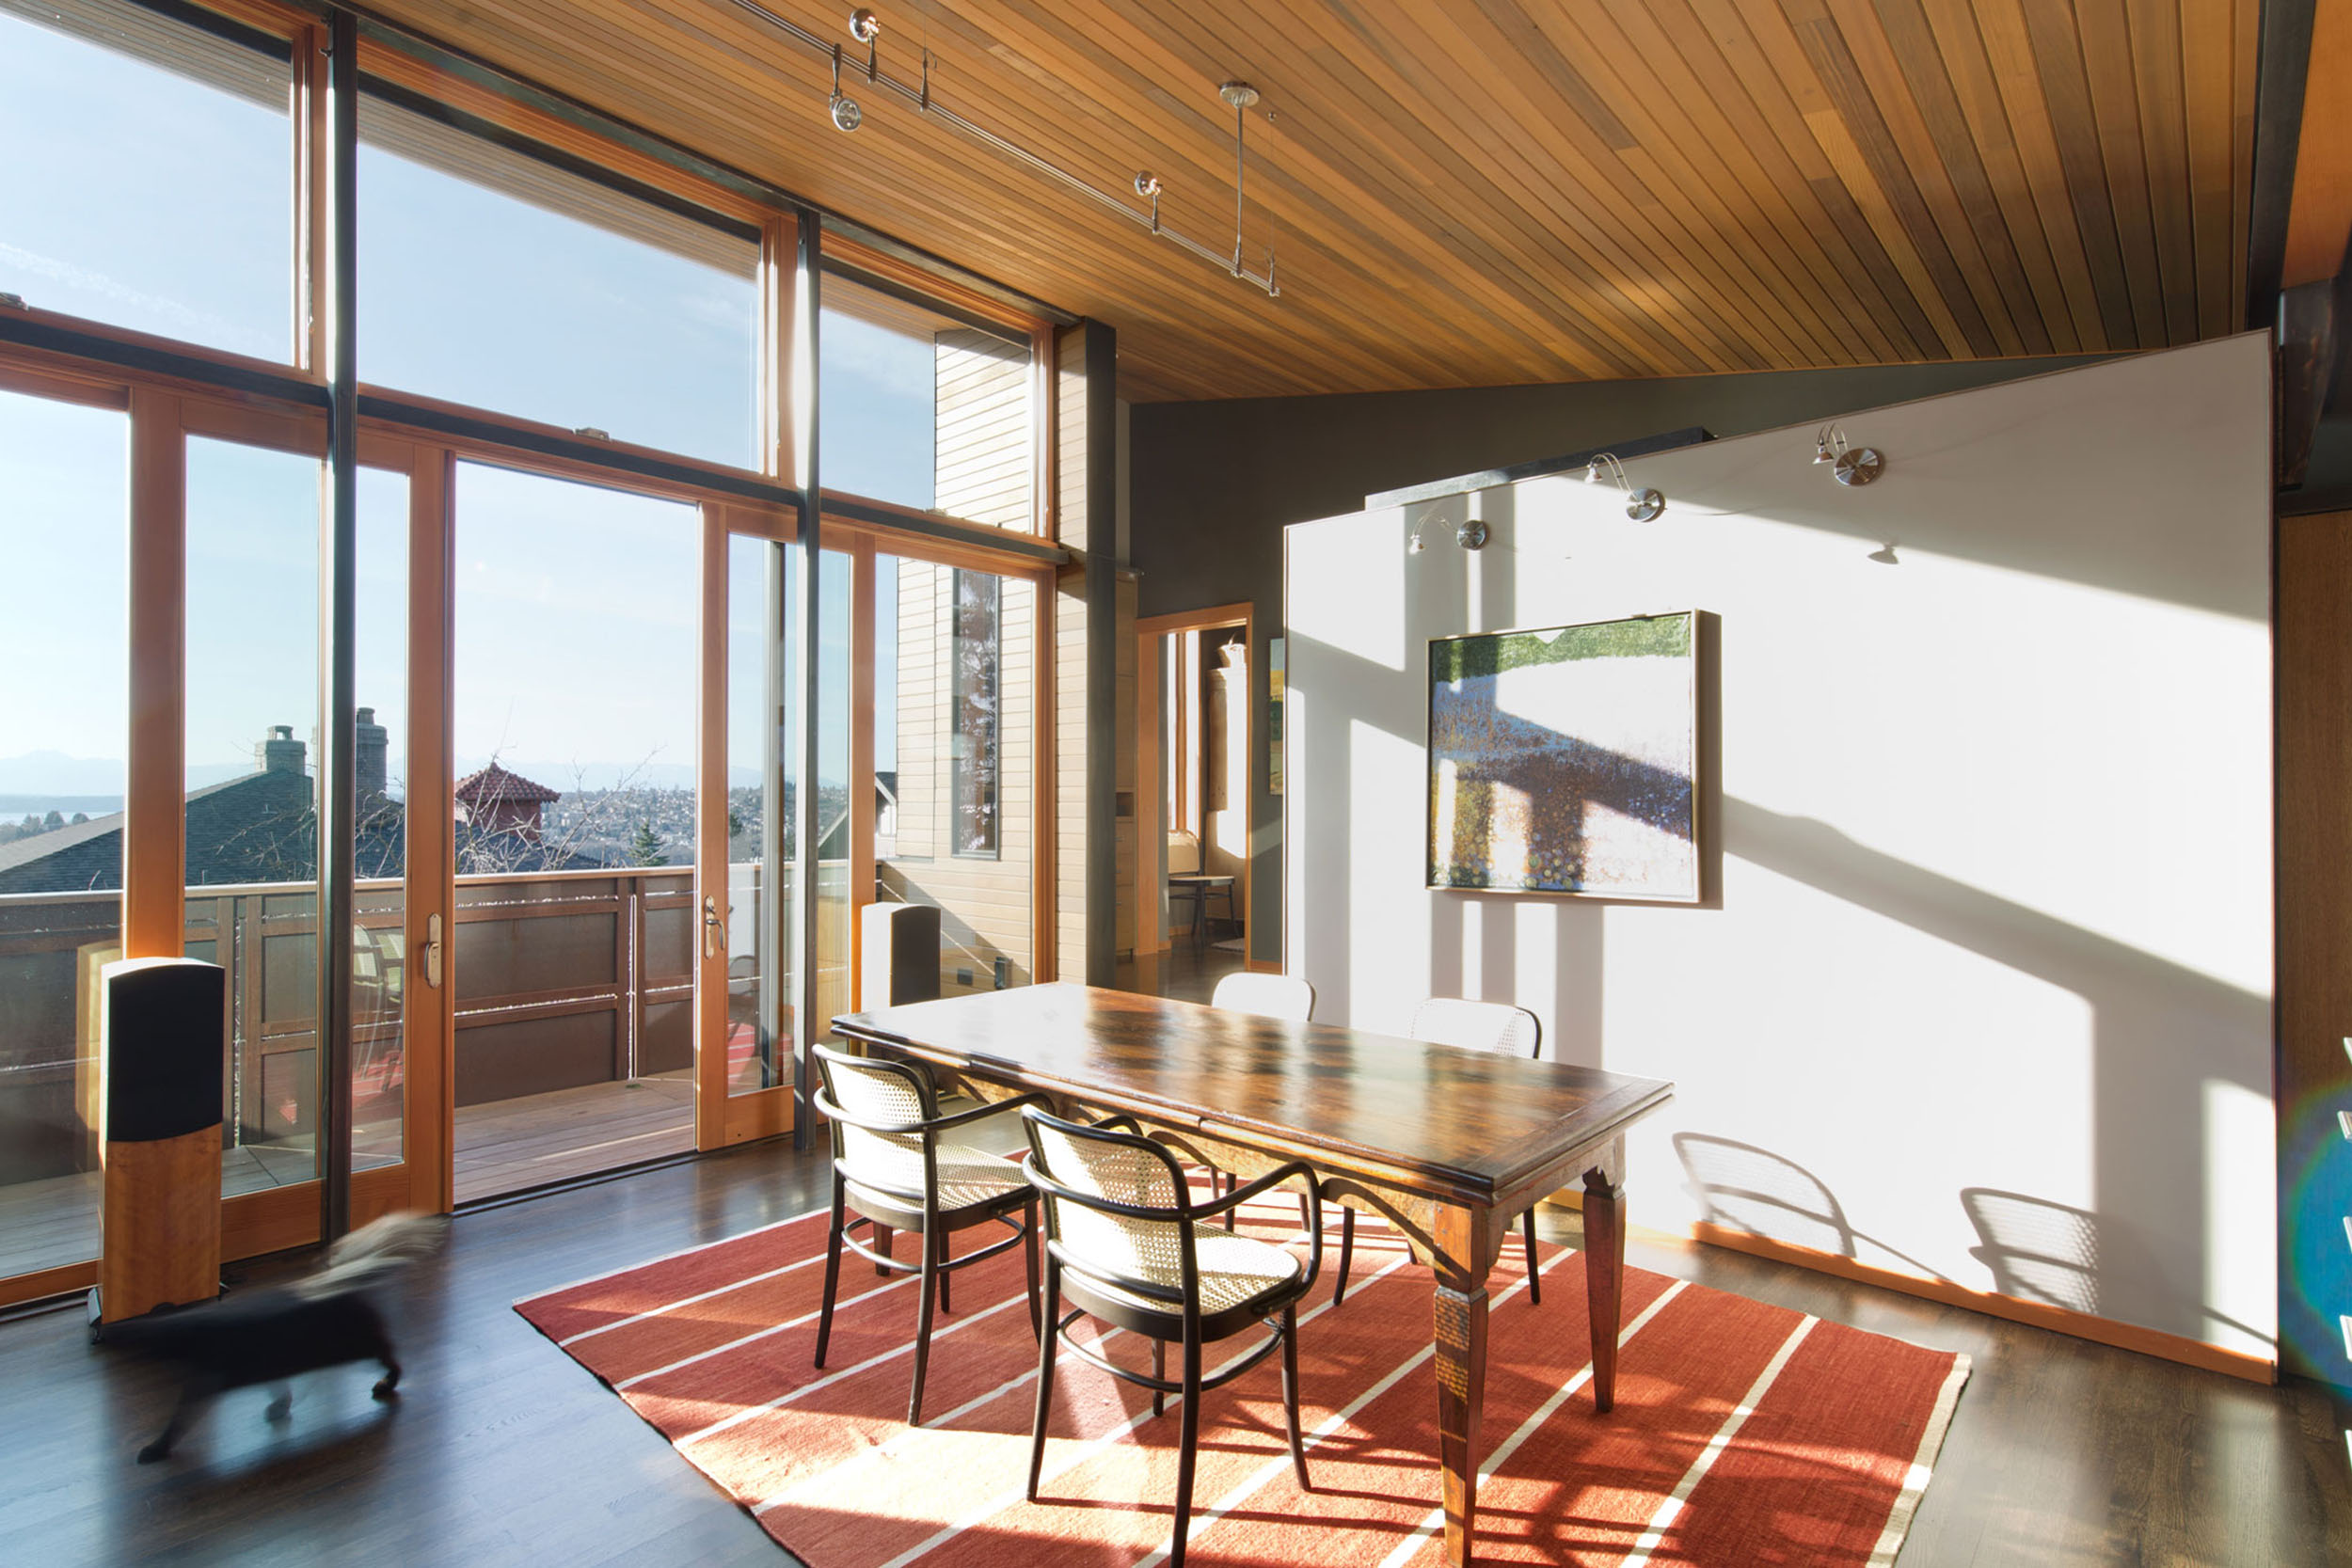 A sun soaked dining room with a view to the mountains beyond.  The simple space, connected to the living room and deck, provides special place for meals alone or with friends.